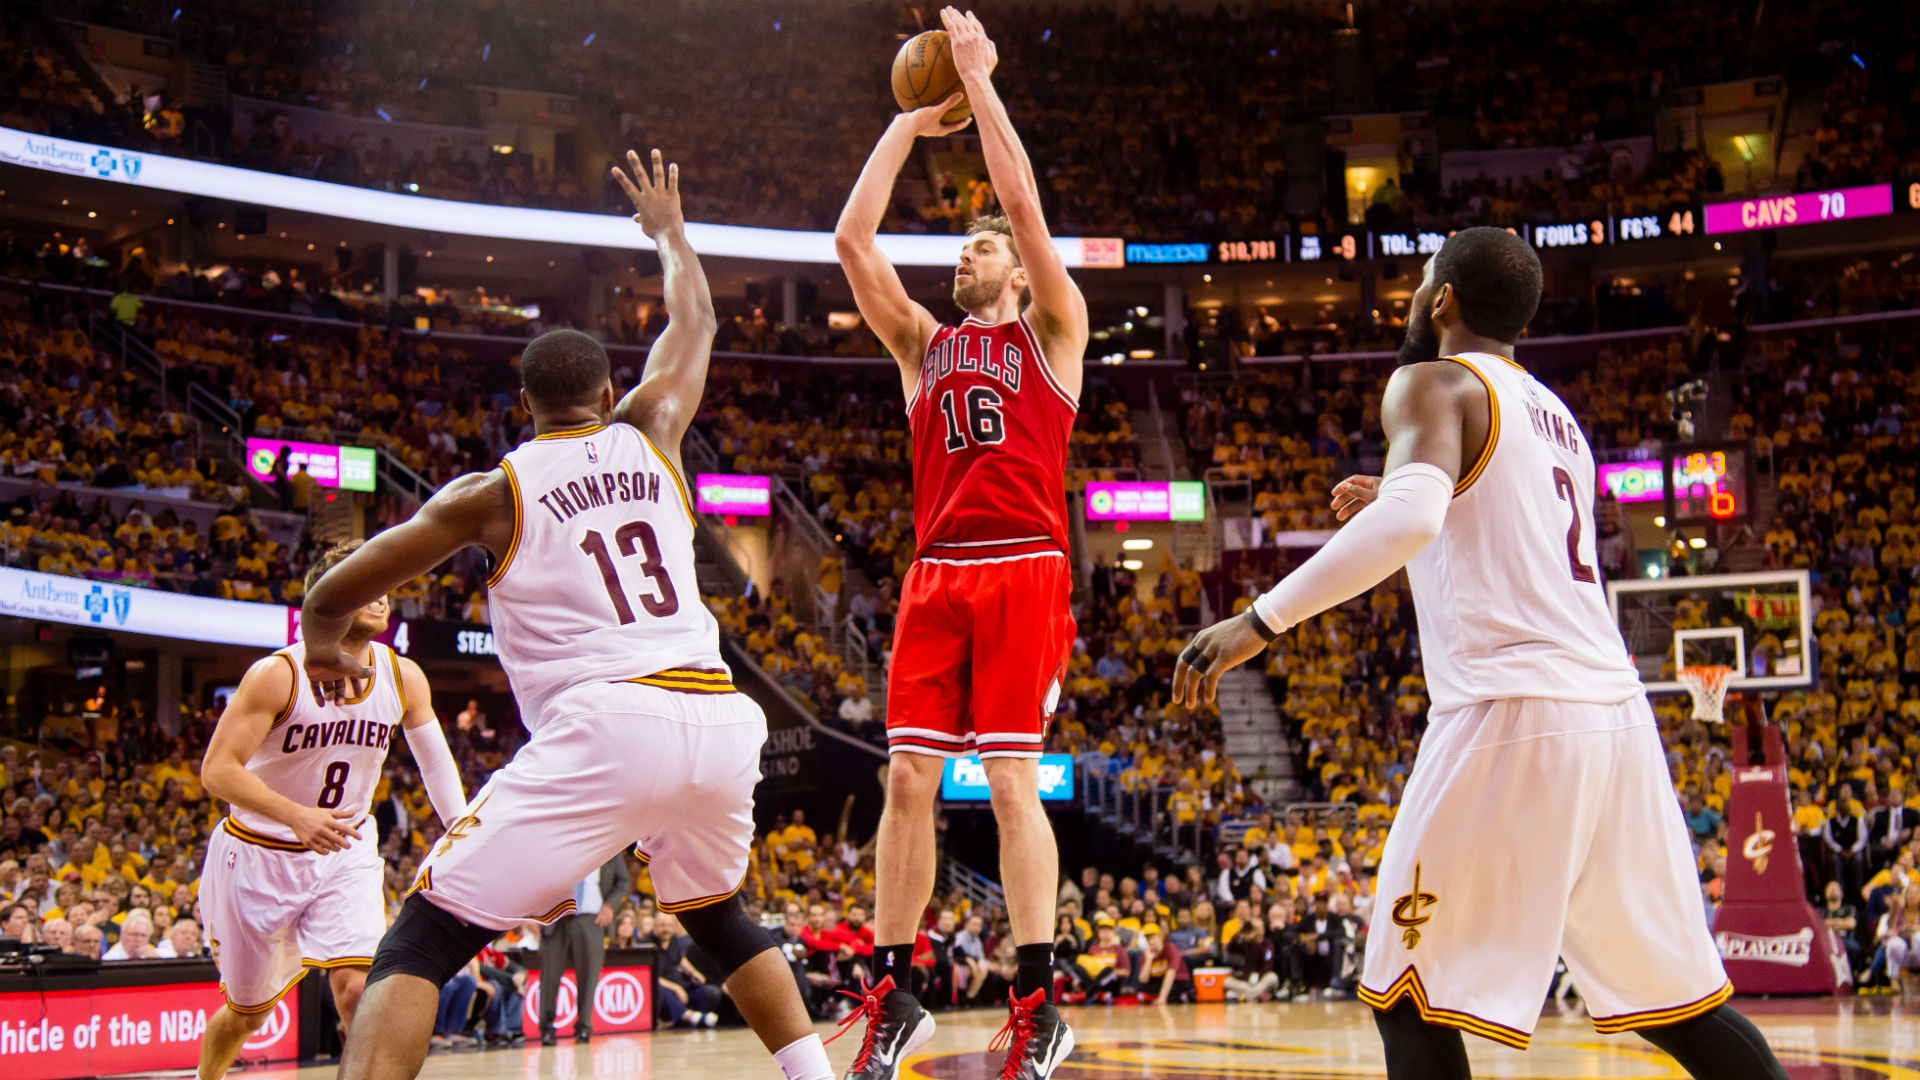 pau-gasol-bulls-ftr-getty-050415